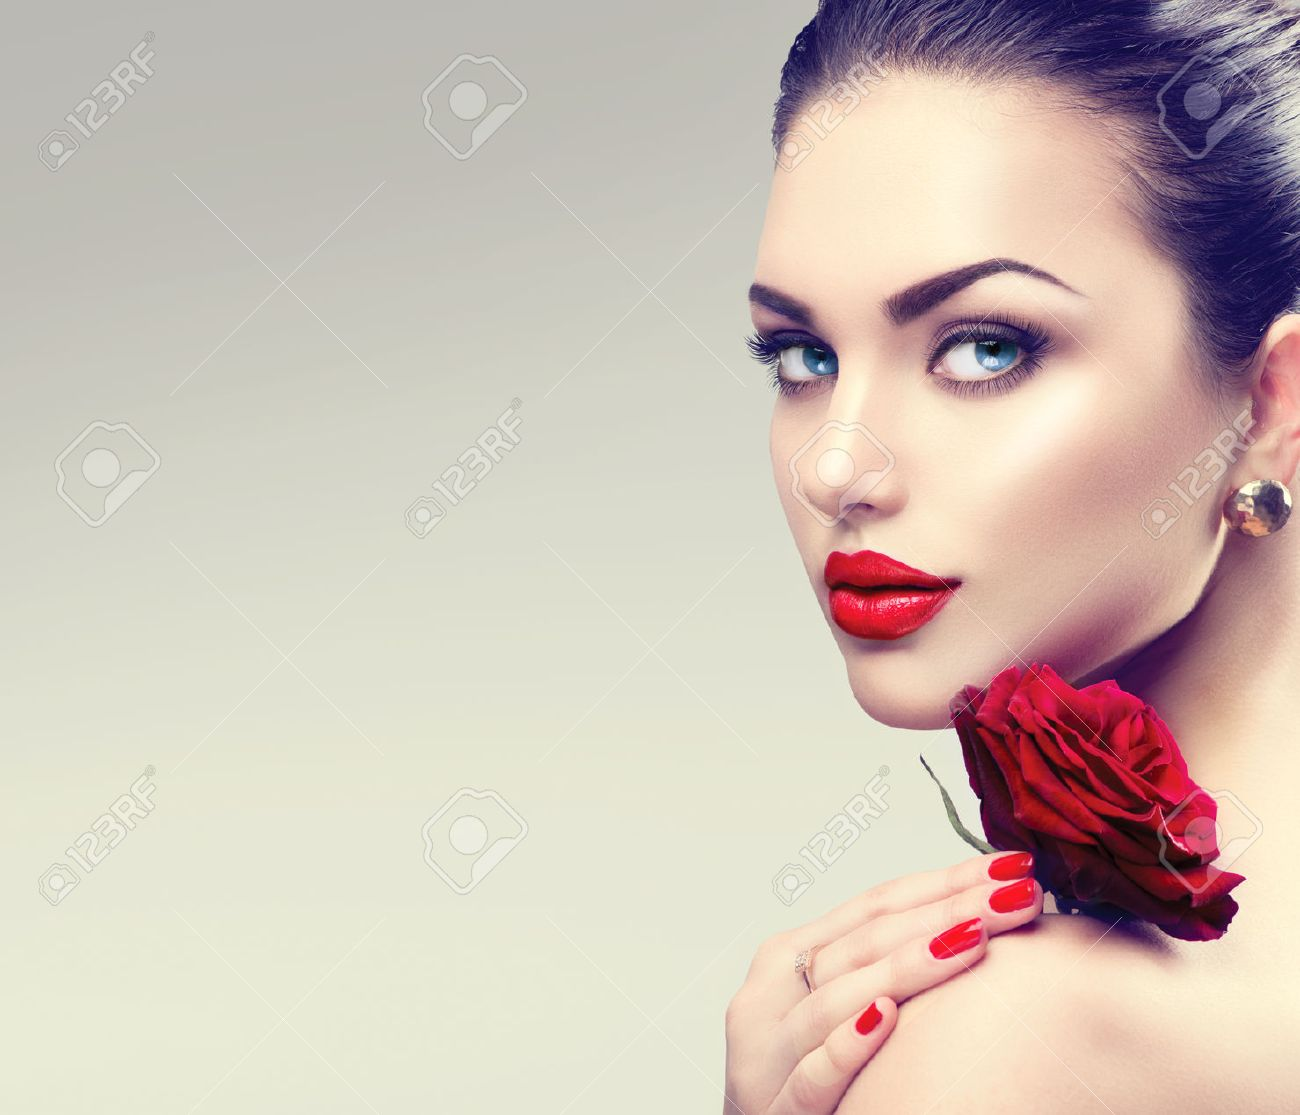 Beauty fashion model woman face. Portrait with red rose flower Stock Photo - 51892338